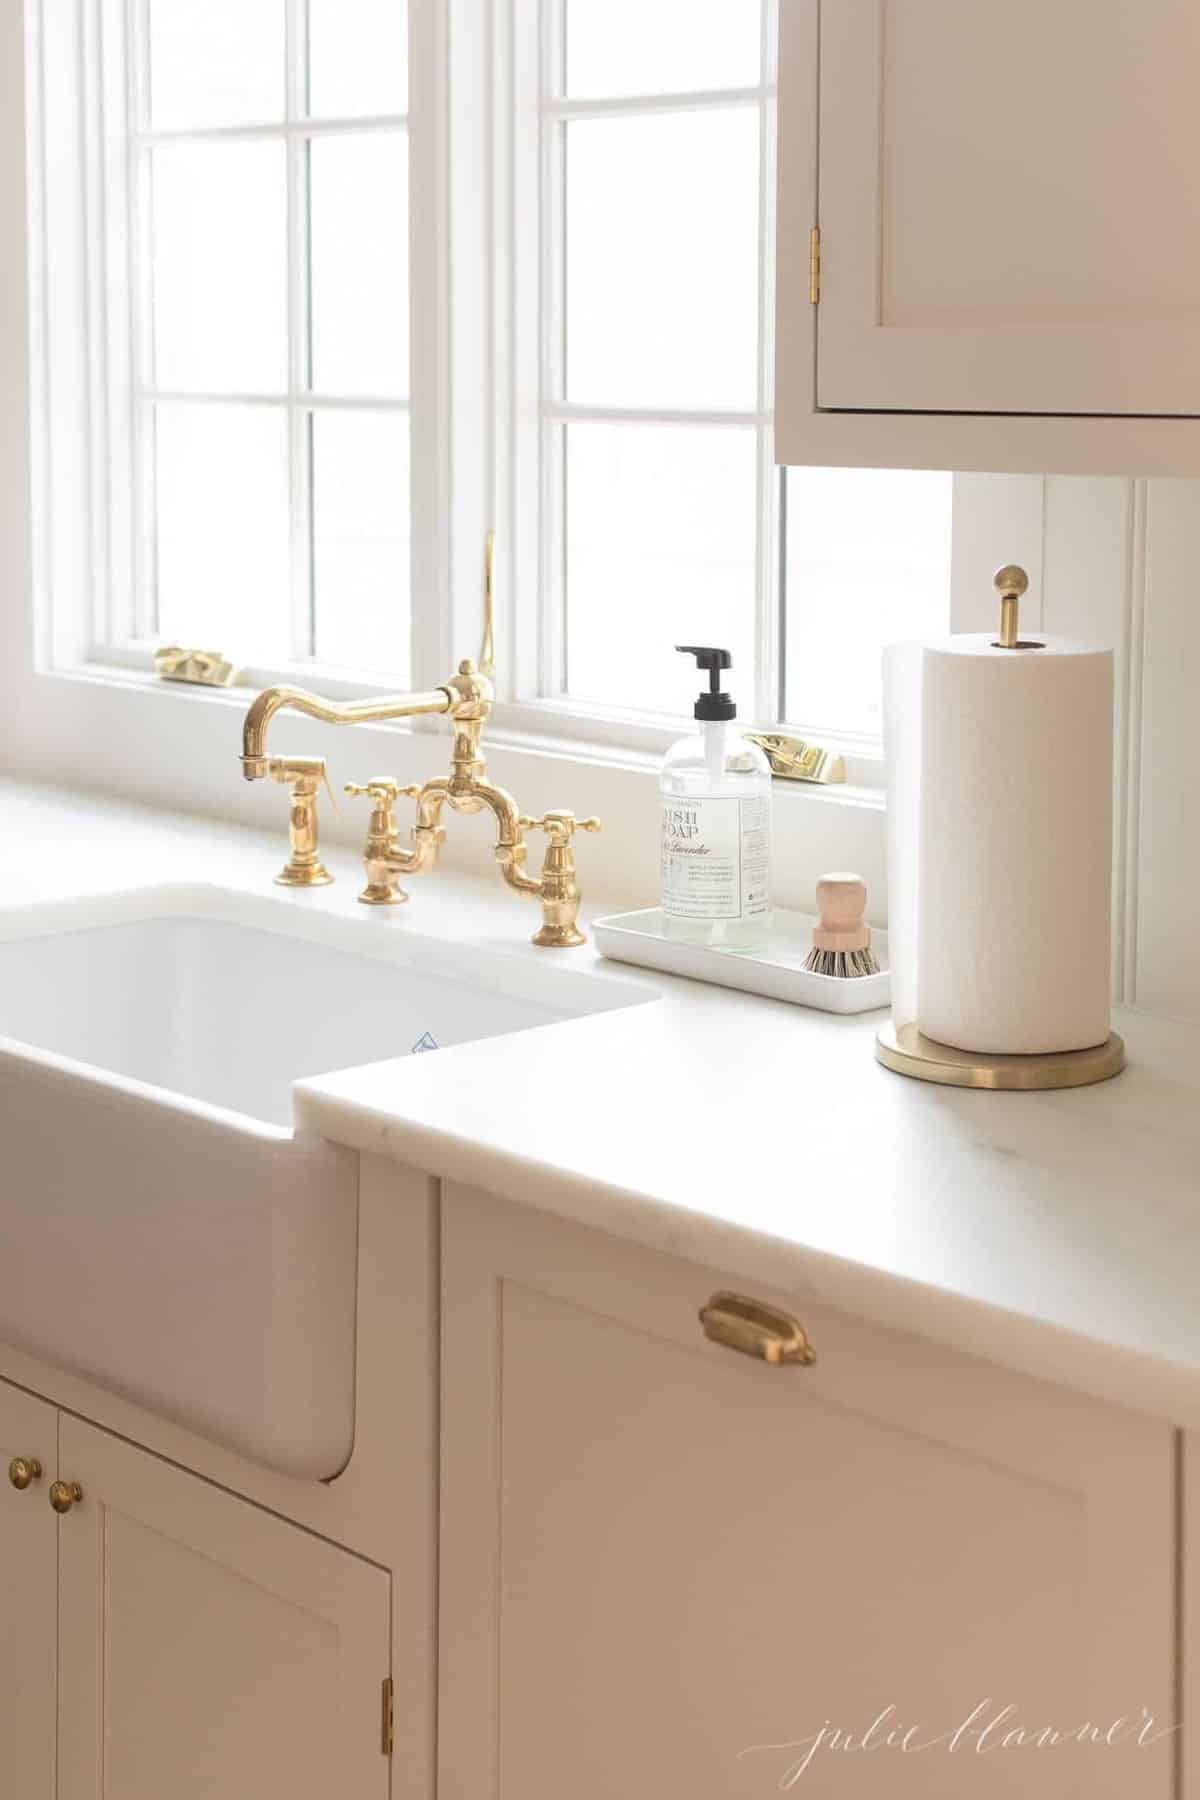 cream kitchen cabinets, farmhouse sink, brass faucet.